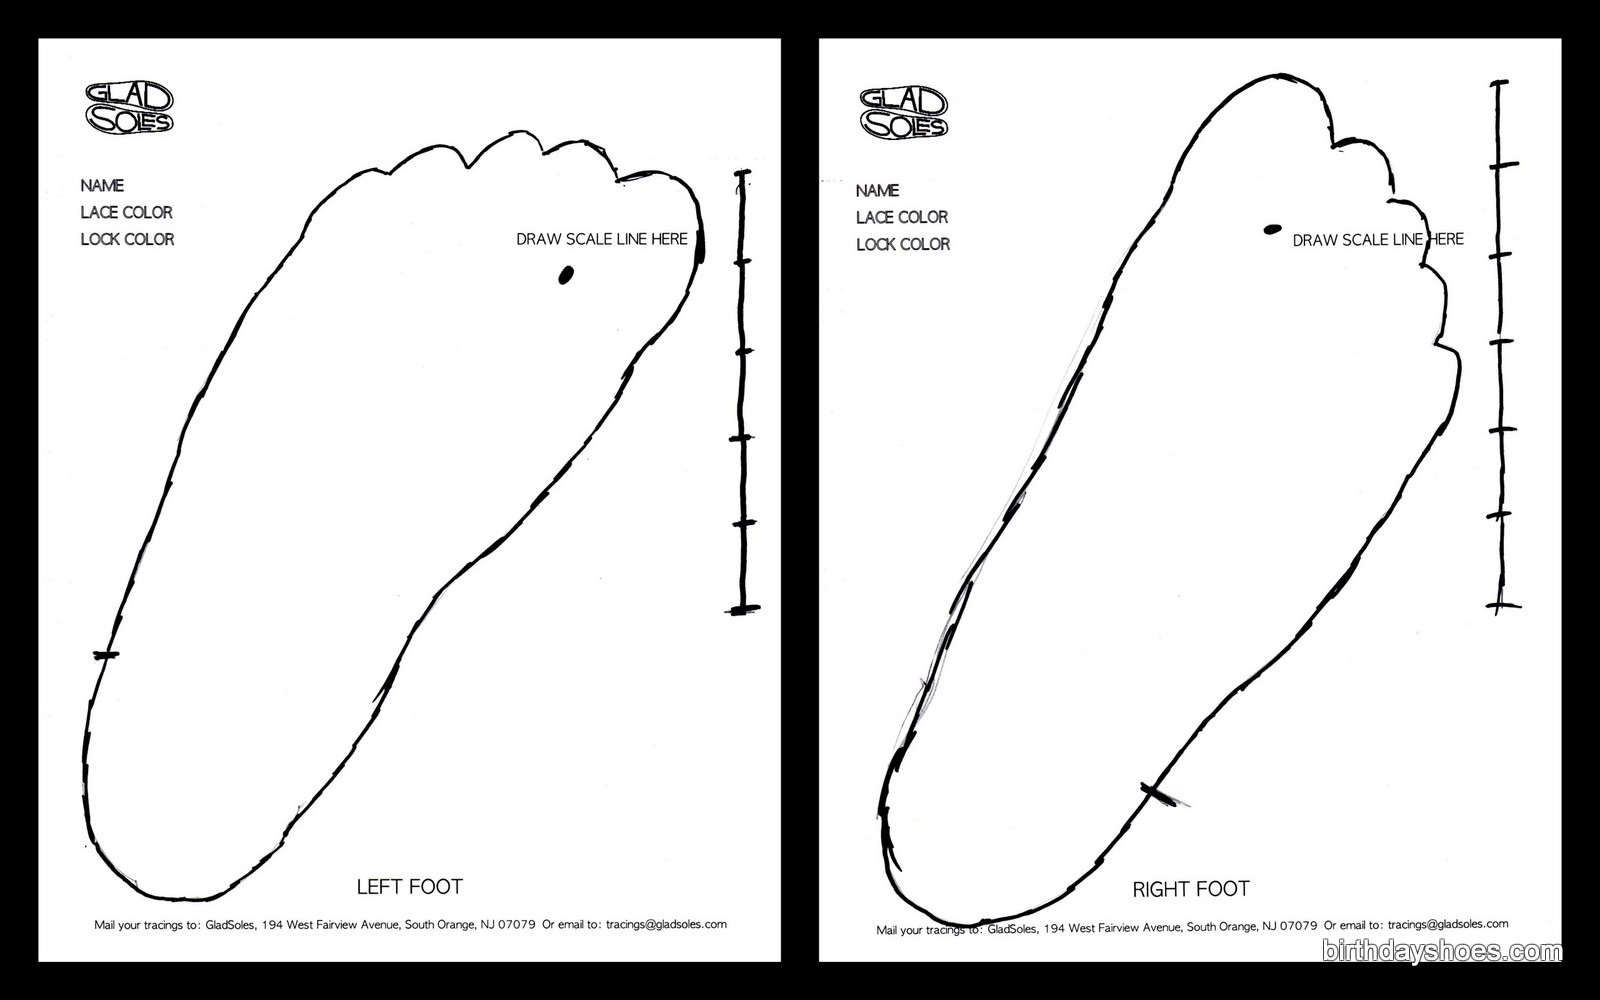 My foot tracings for the custom-made Gladsoles